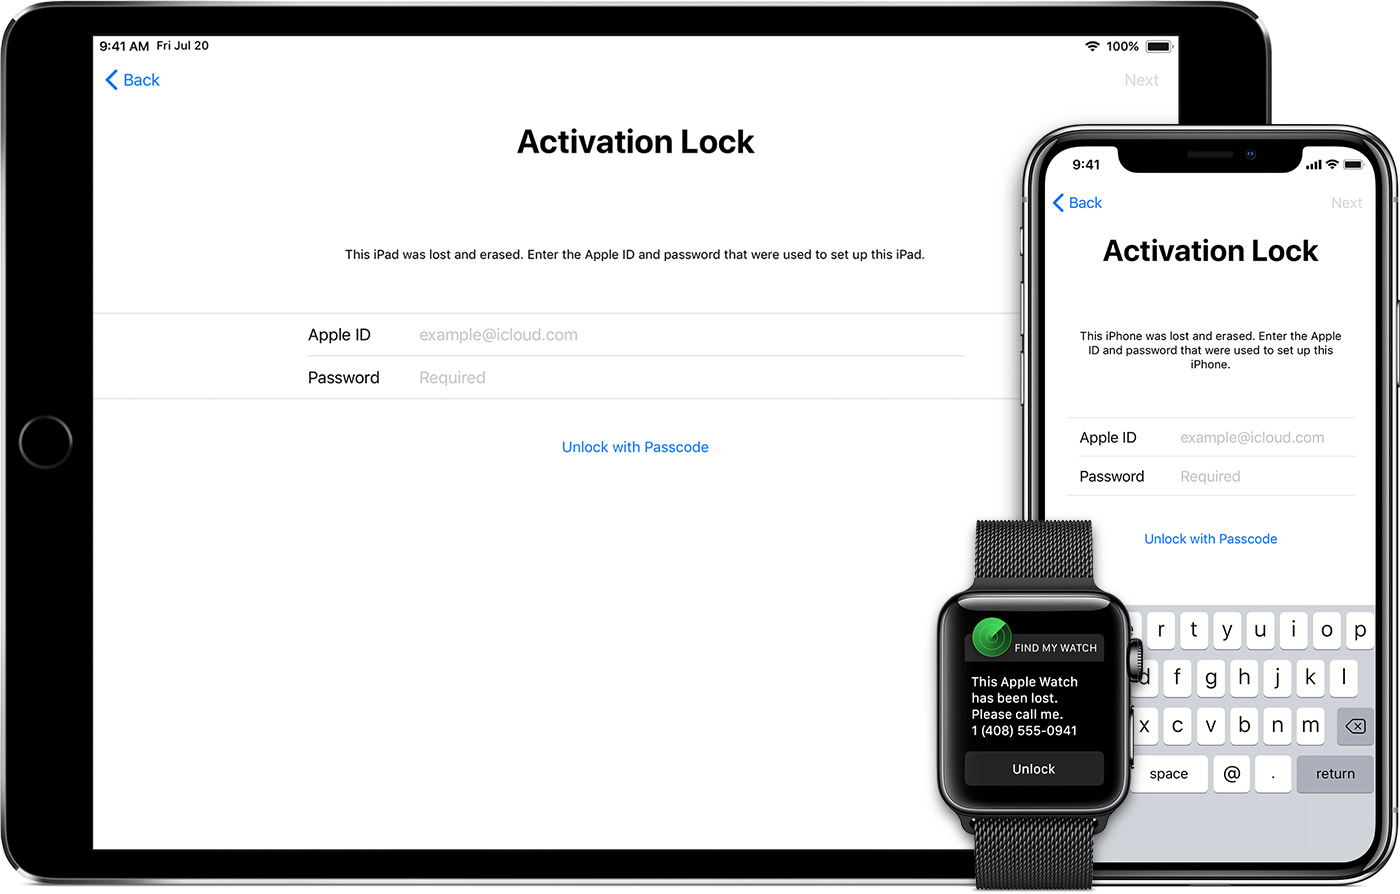 Find My iPhone Activation Lock - Apple Support